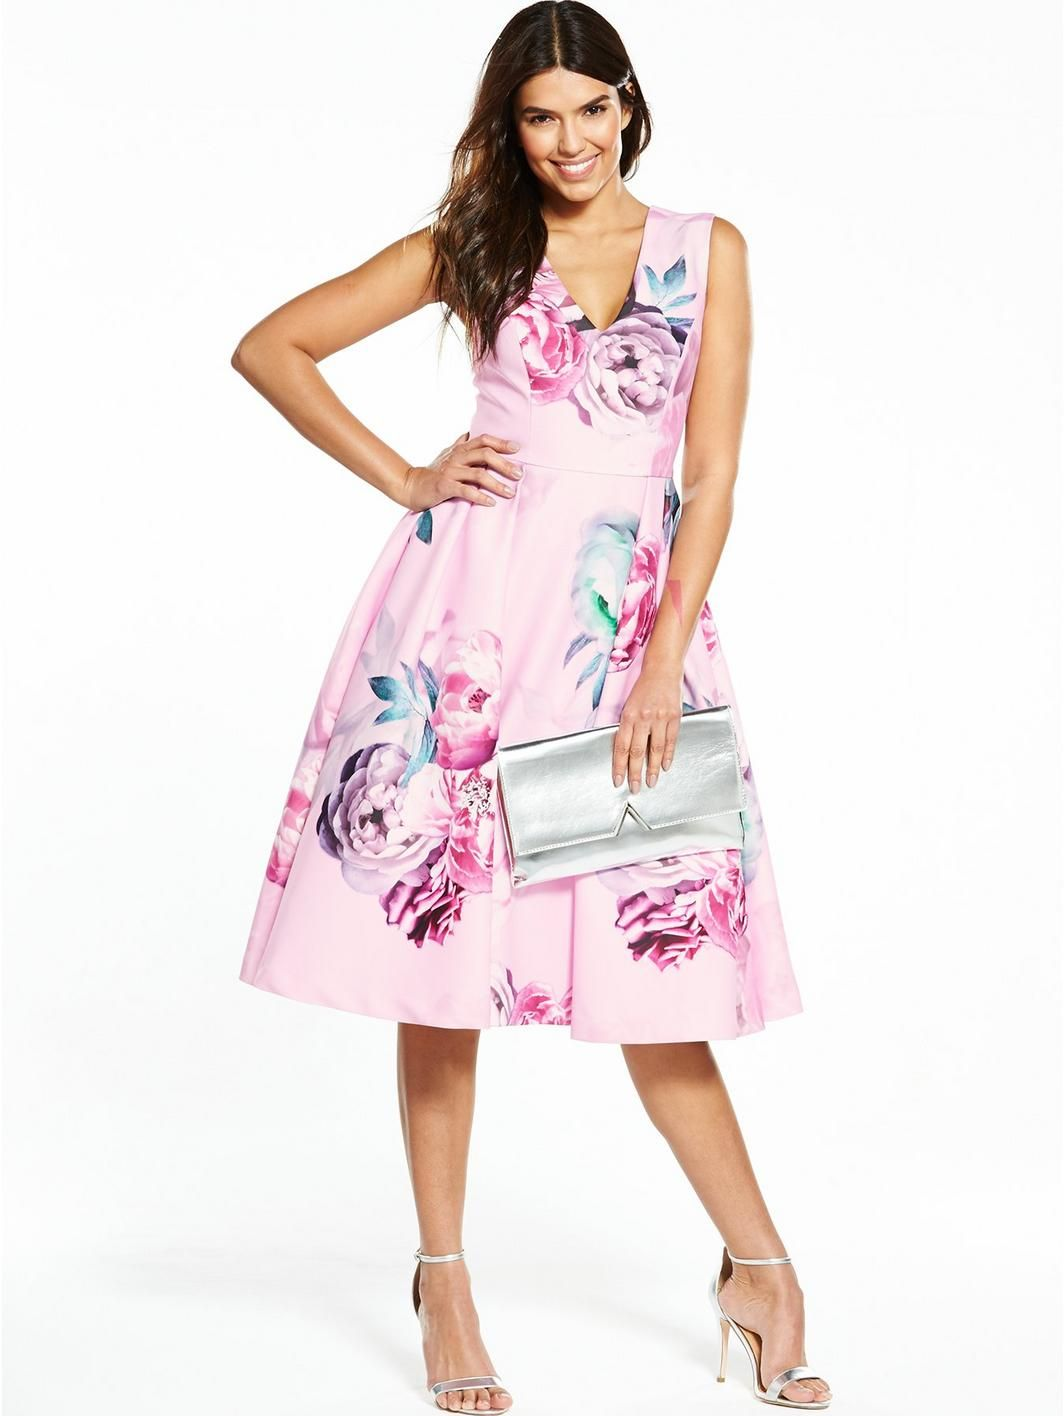 Littlewoods dresses for weddings  Floral Printed Prom Dress  Pink  Prom Floral and Shopping